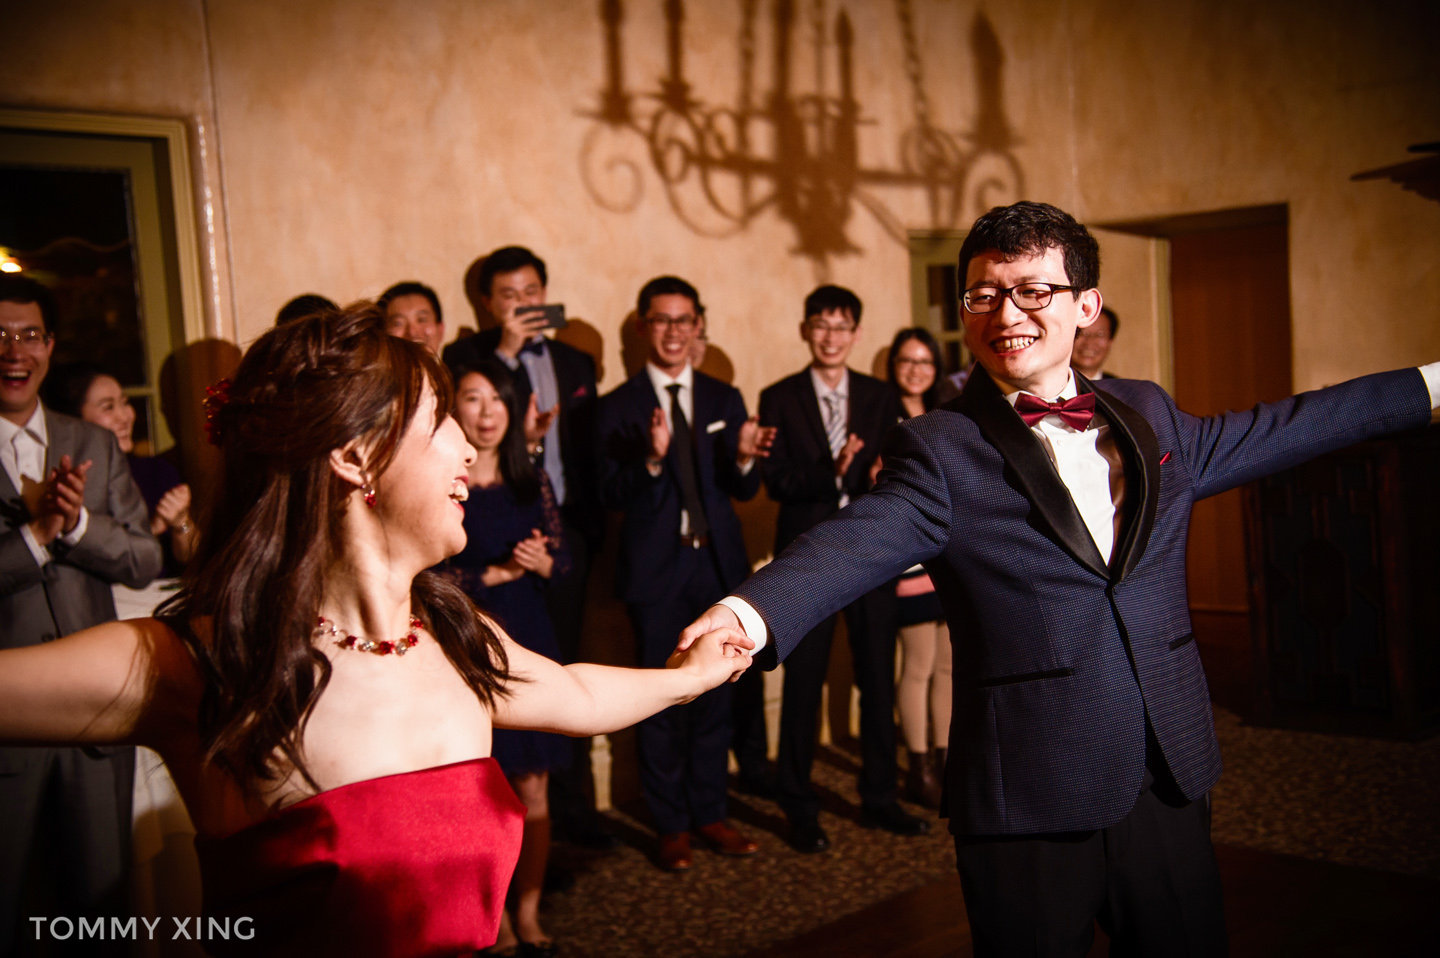 Los Angeles Wedding Photographer 洛杉矶婚礼婚纱摄影师 Tommy Xing-287.JPG